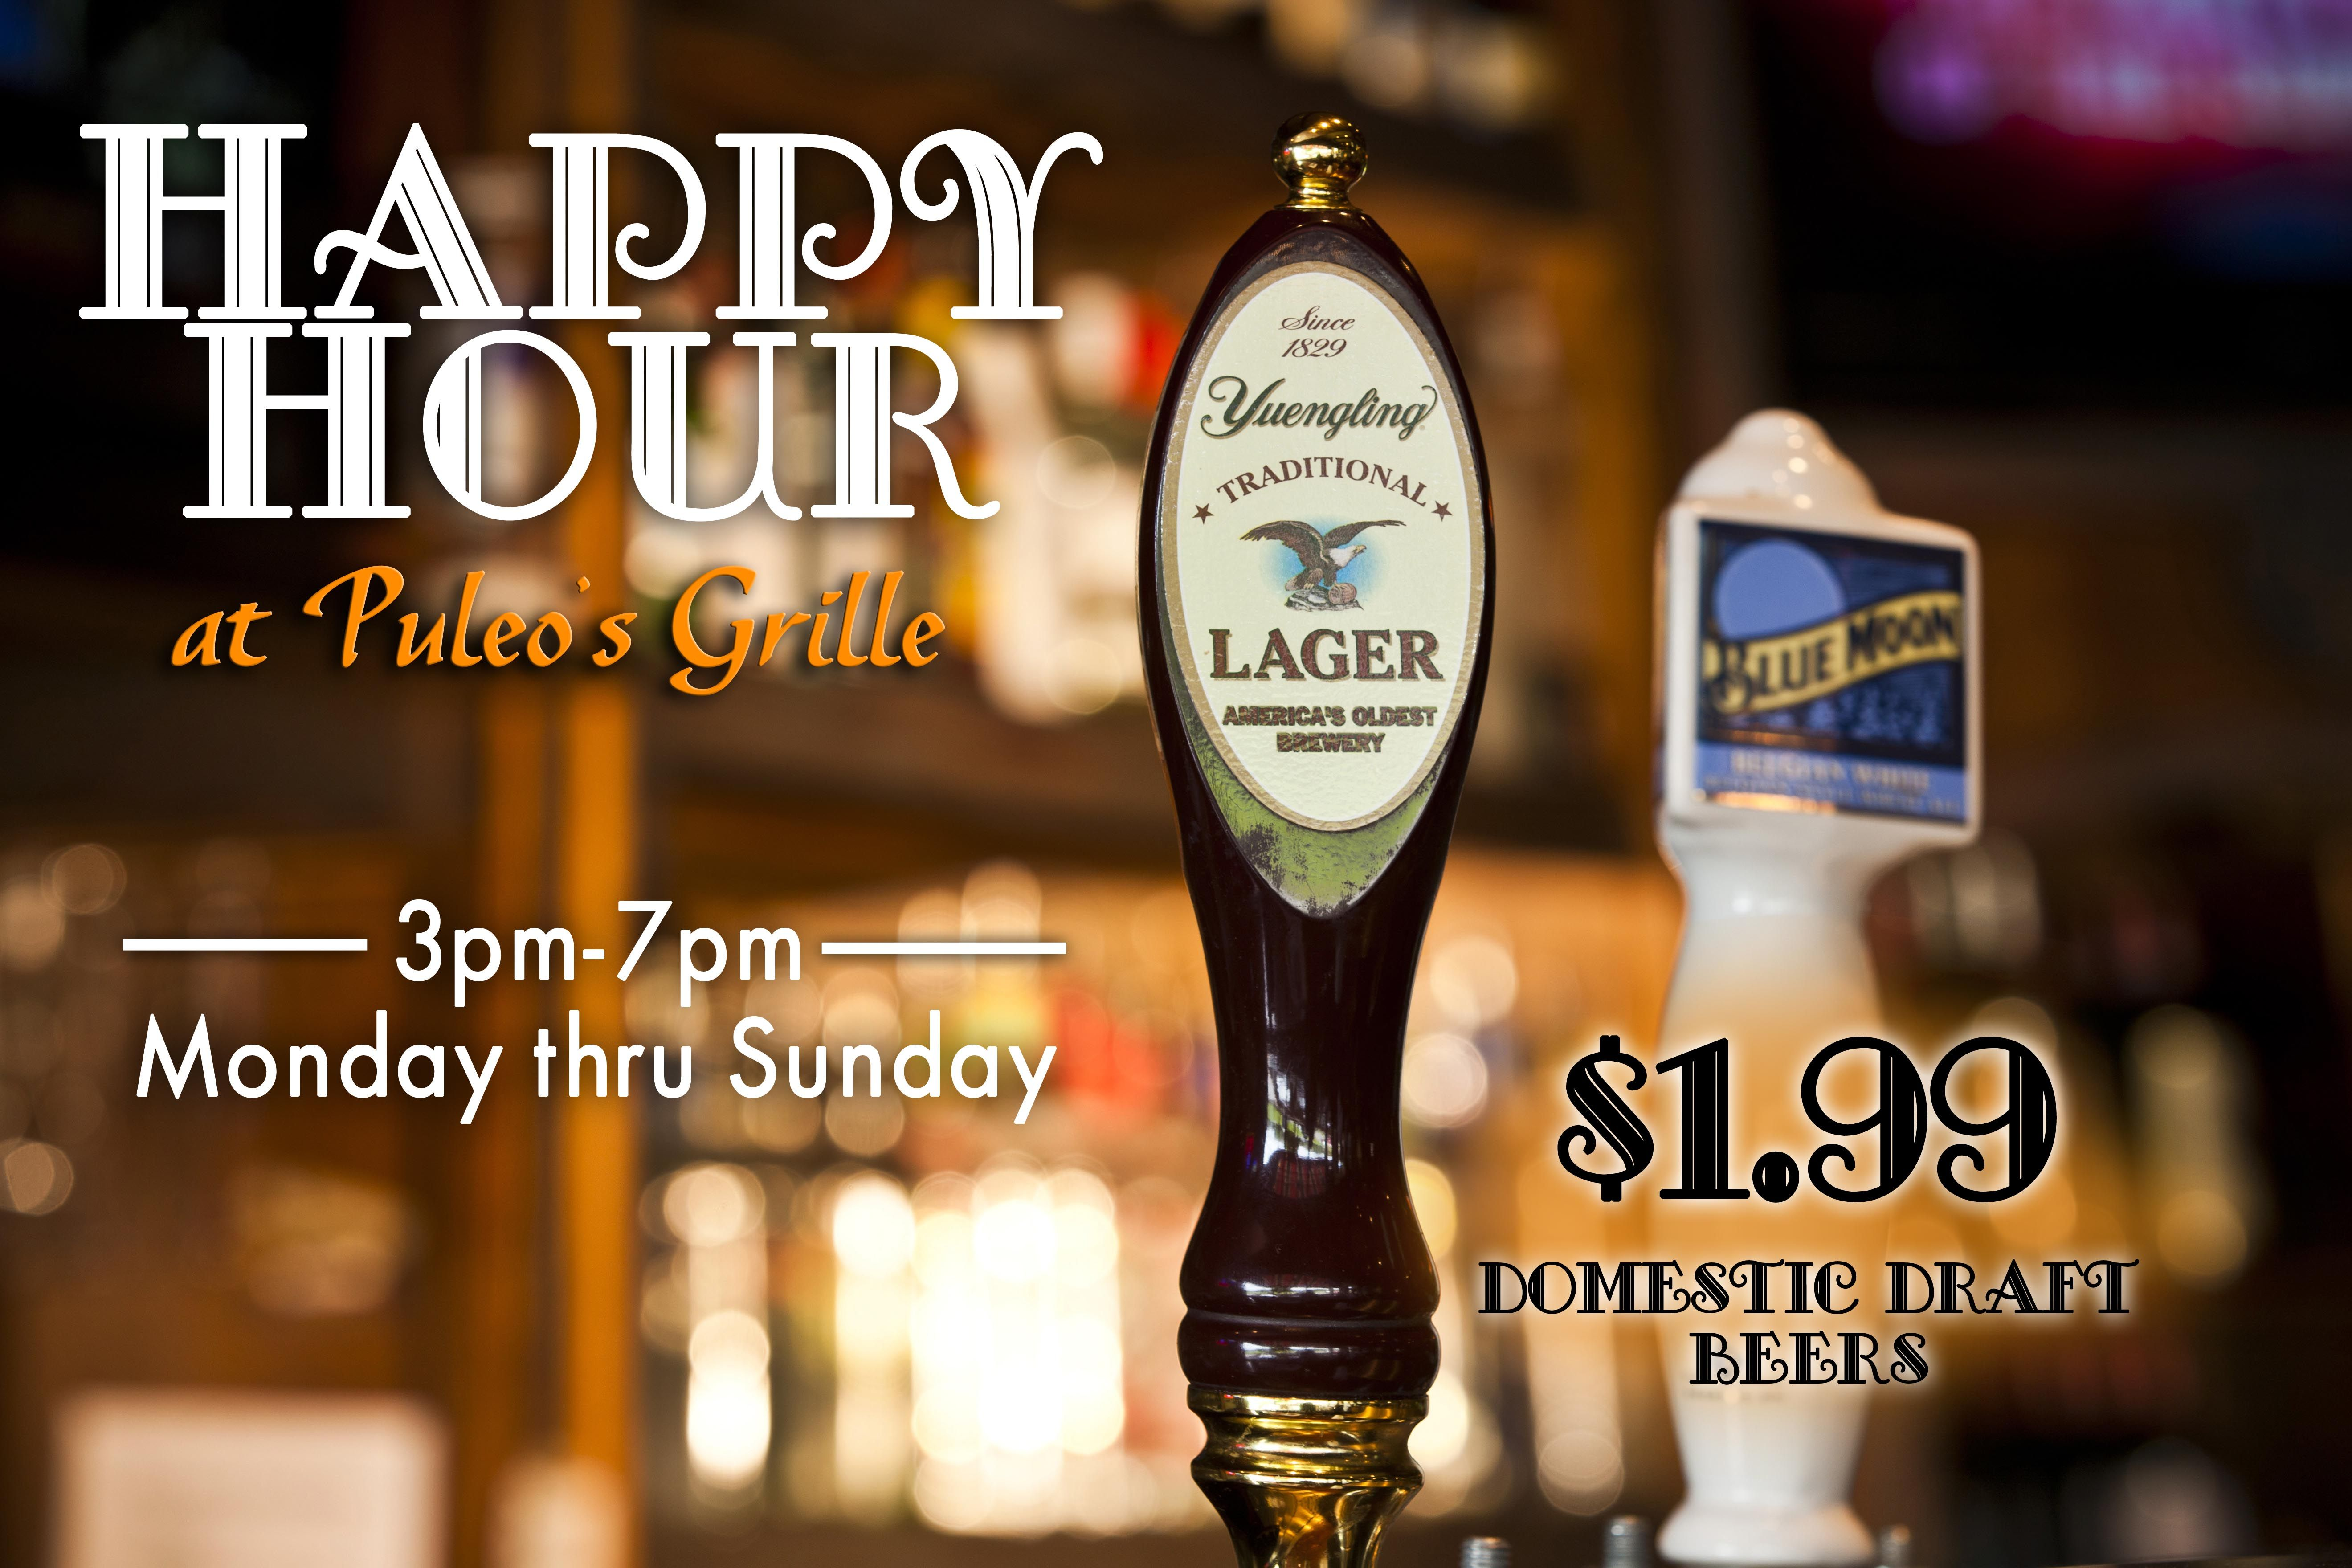 Beer Specials Happy Hour Beer Specials At Puleo S Grille Puleo S Grille